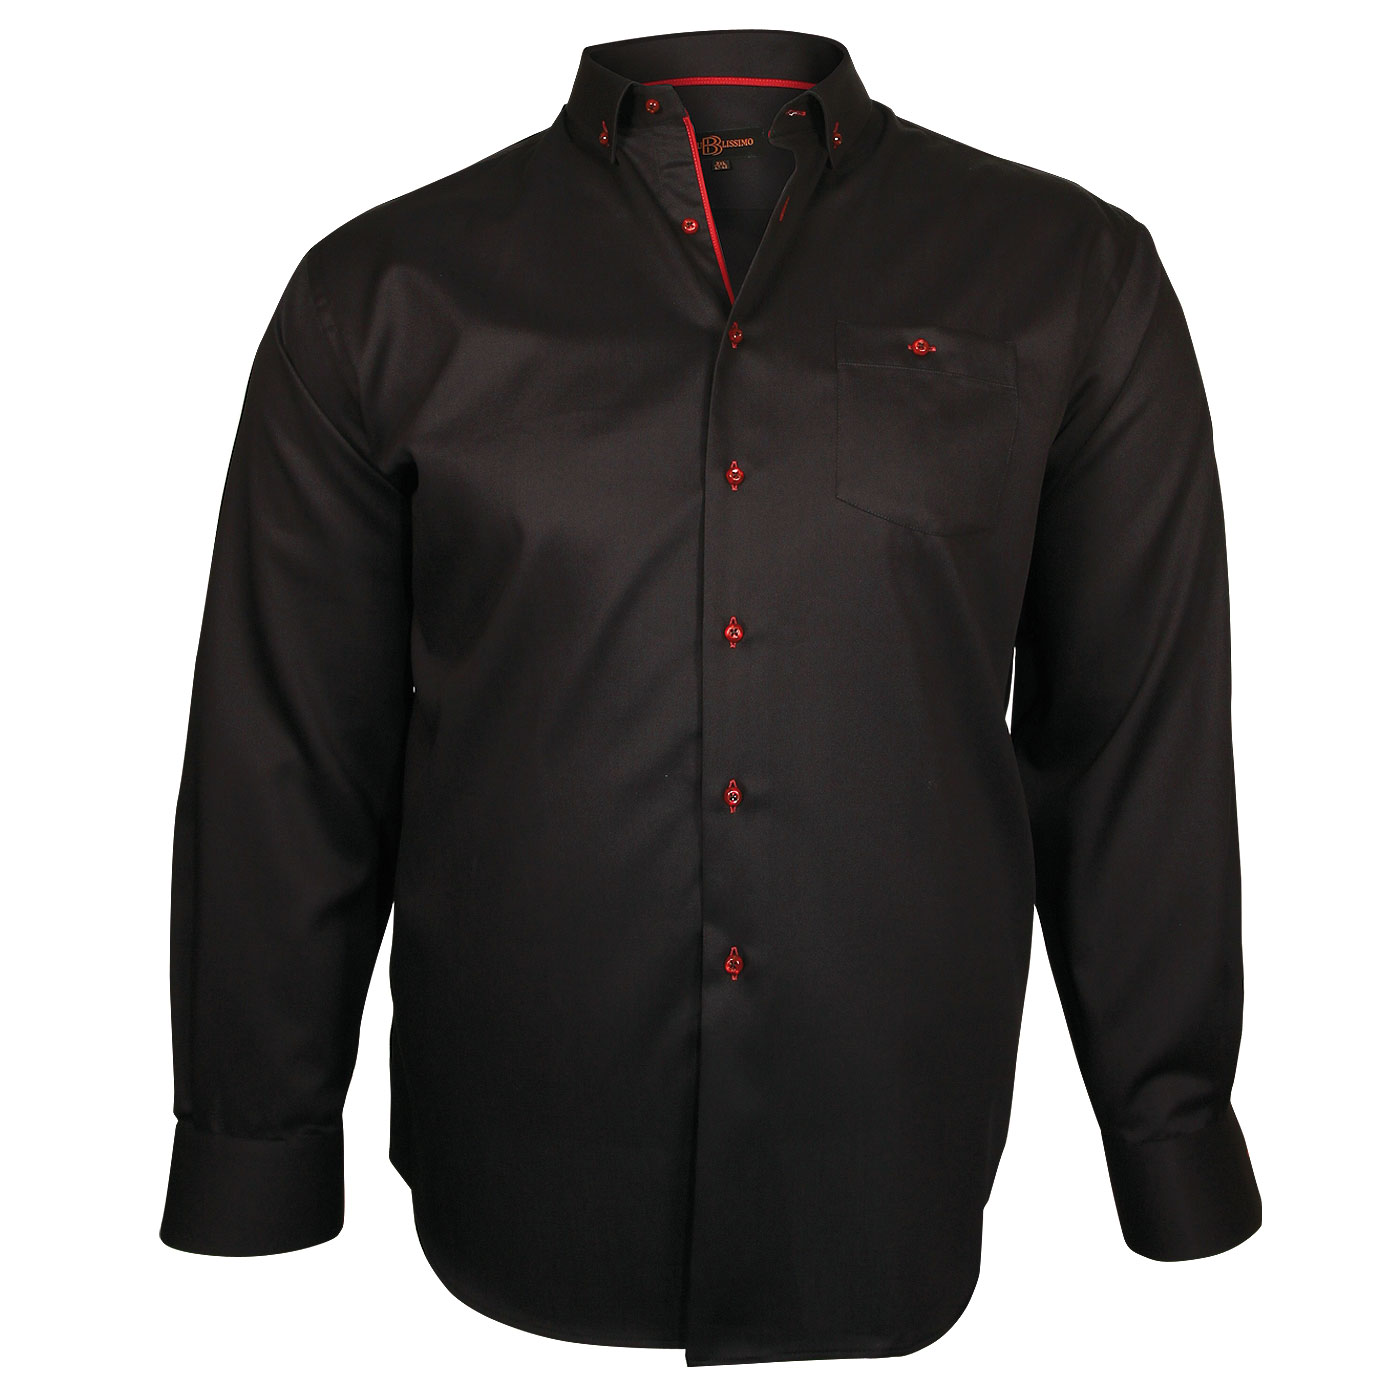 Large Shirts Shirt for Men +600 Models Online